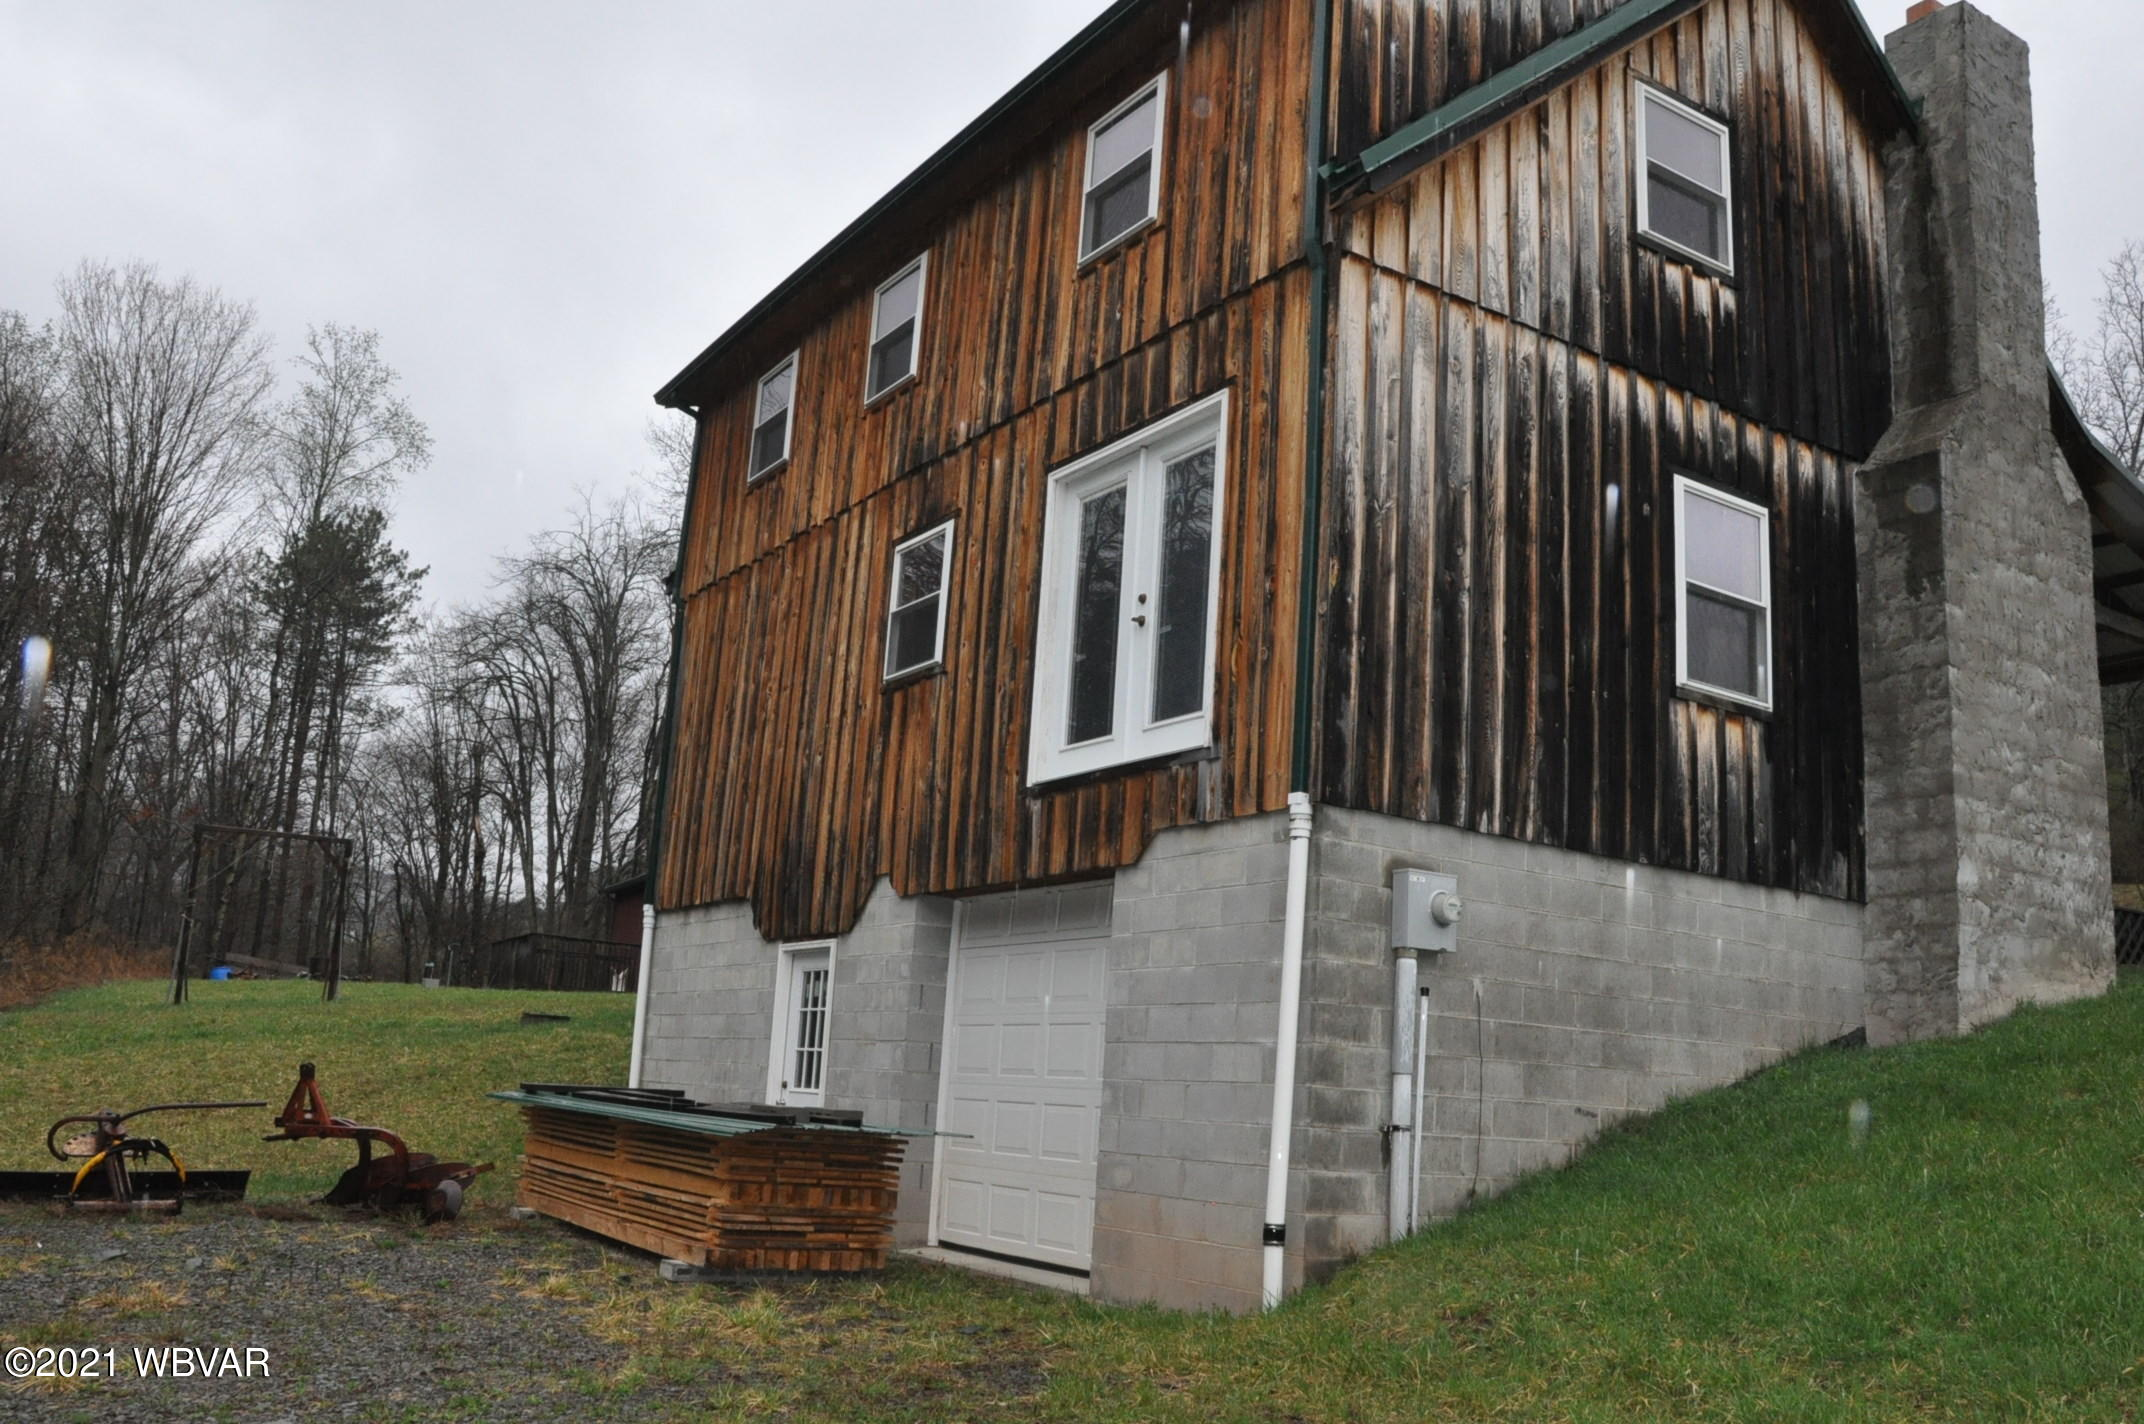 357 SKINNER HOLLOW ROAD, Westfield, PA 16950, 3 Bedrooms Bedrooms, ,1 BathroomBathrooms,Cabin/vacation home,For sale,SKINNER HOLLOW,WB-92477